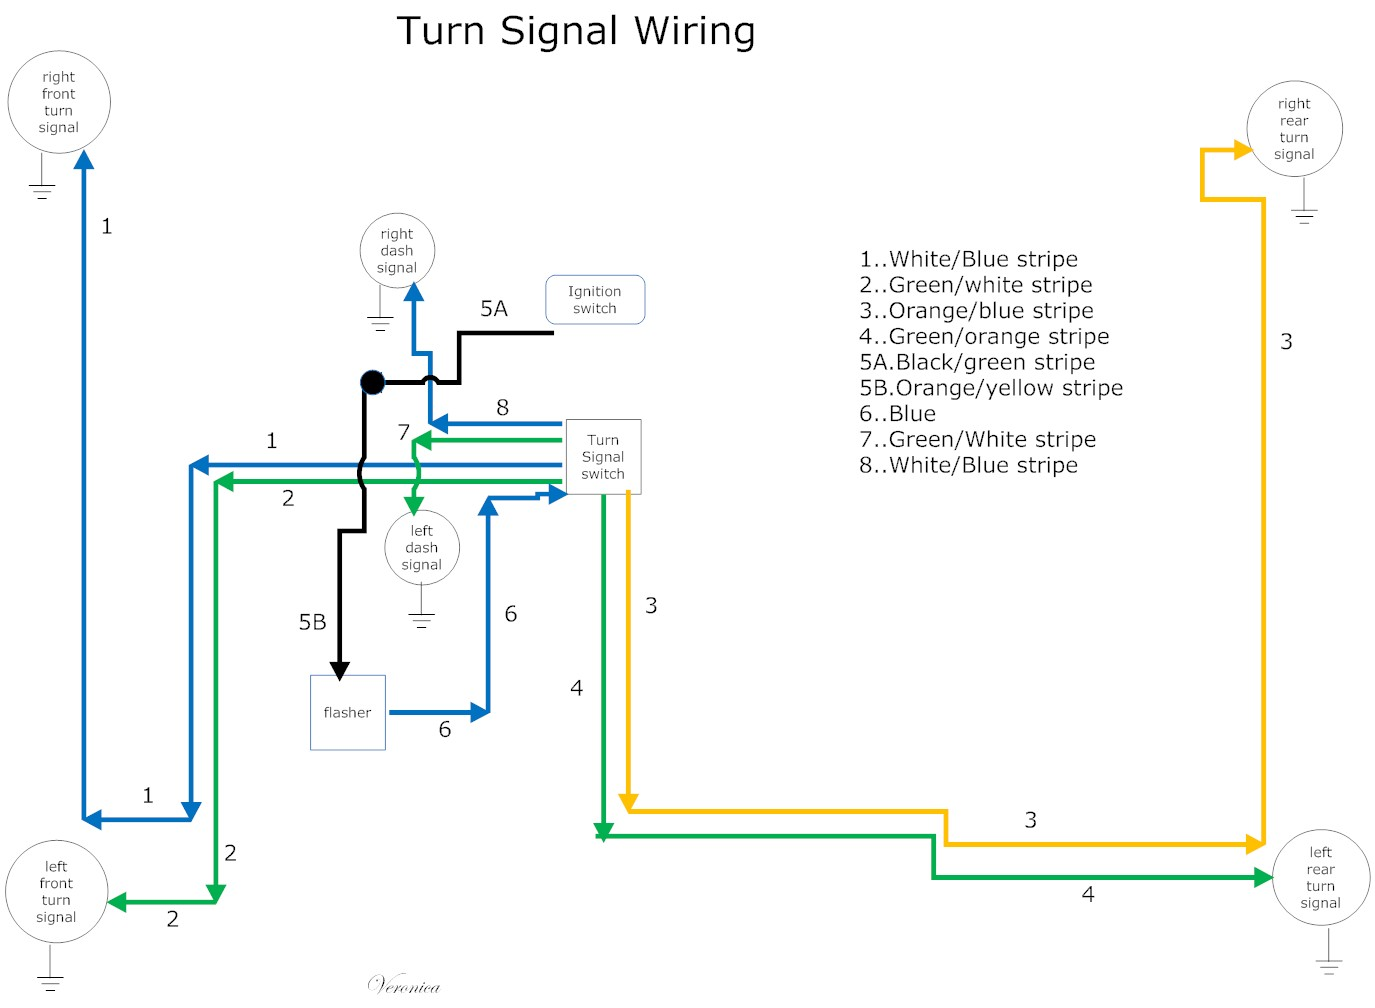 66 mustang turn signal wiring diagram free picture wiring diagram1966 mustang turn signal wiring diagram wiring [ 1375 x 1008 Pixel ]